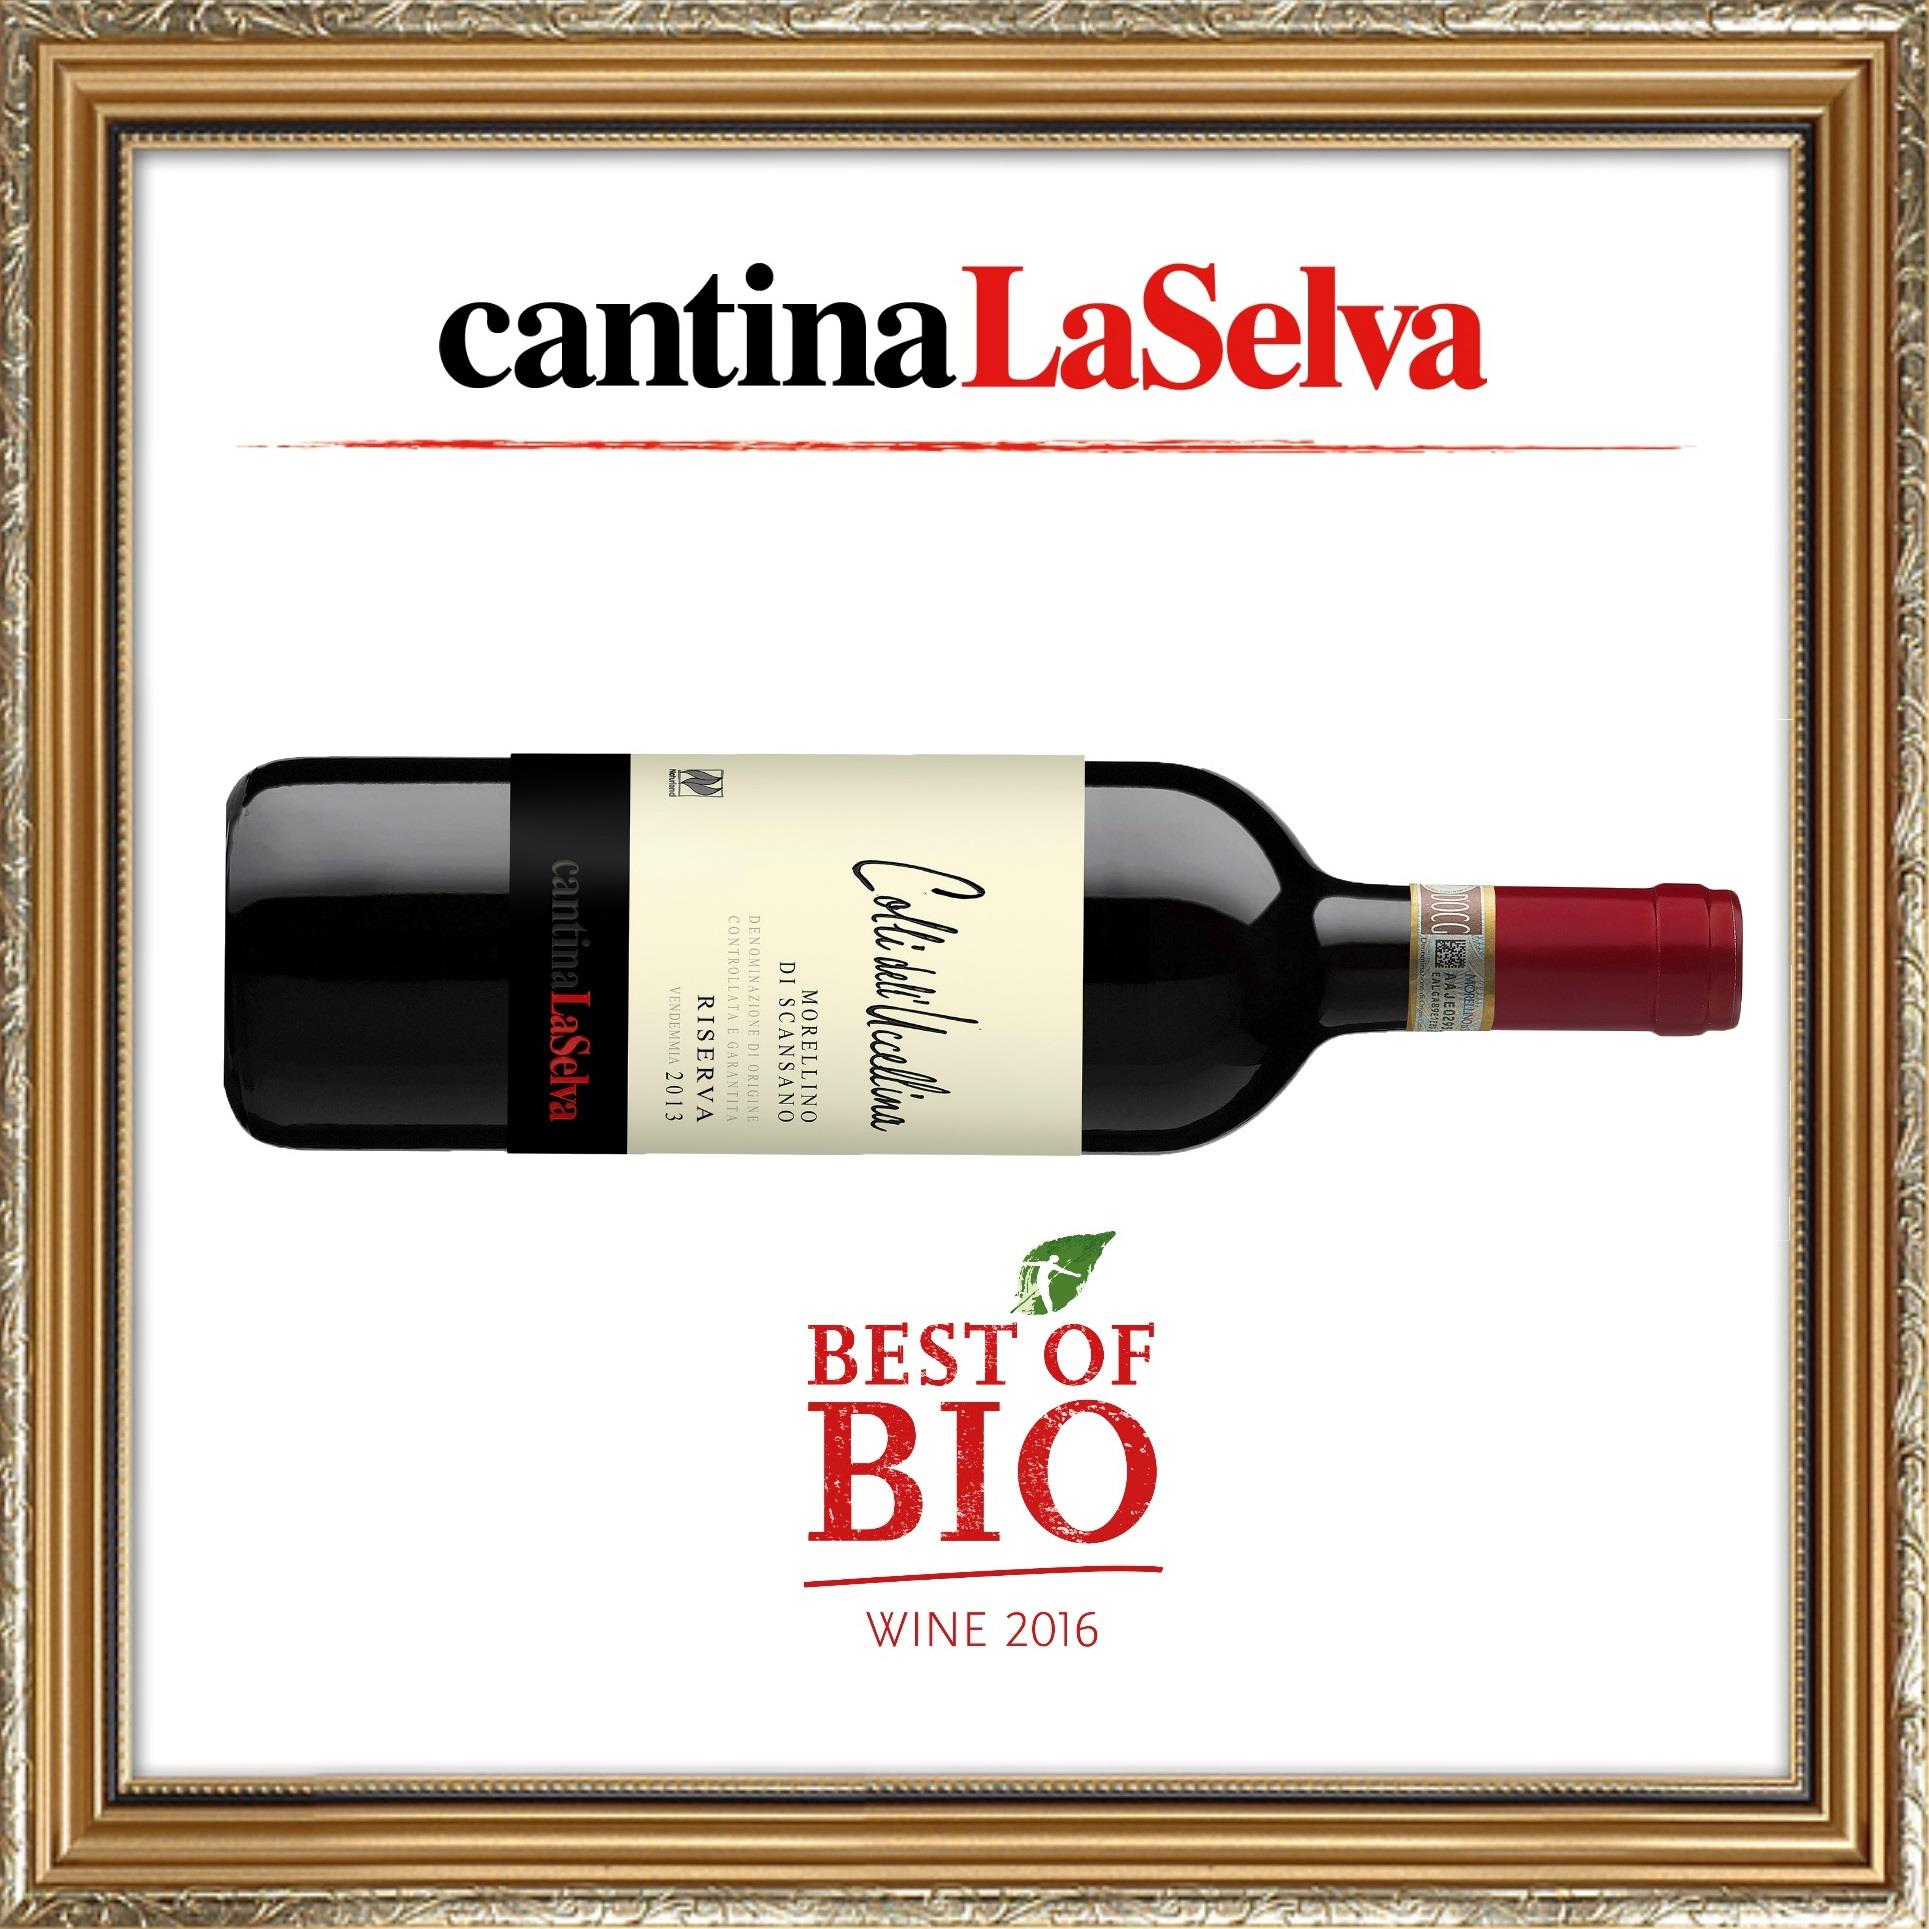 Best_of_Bio_wine